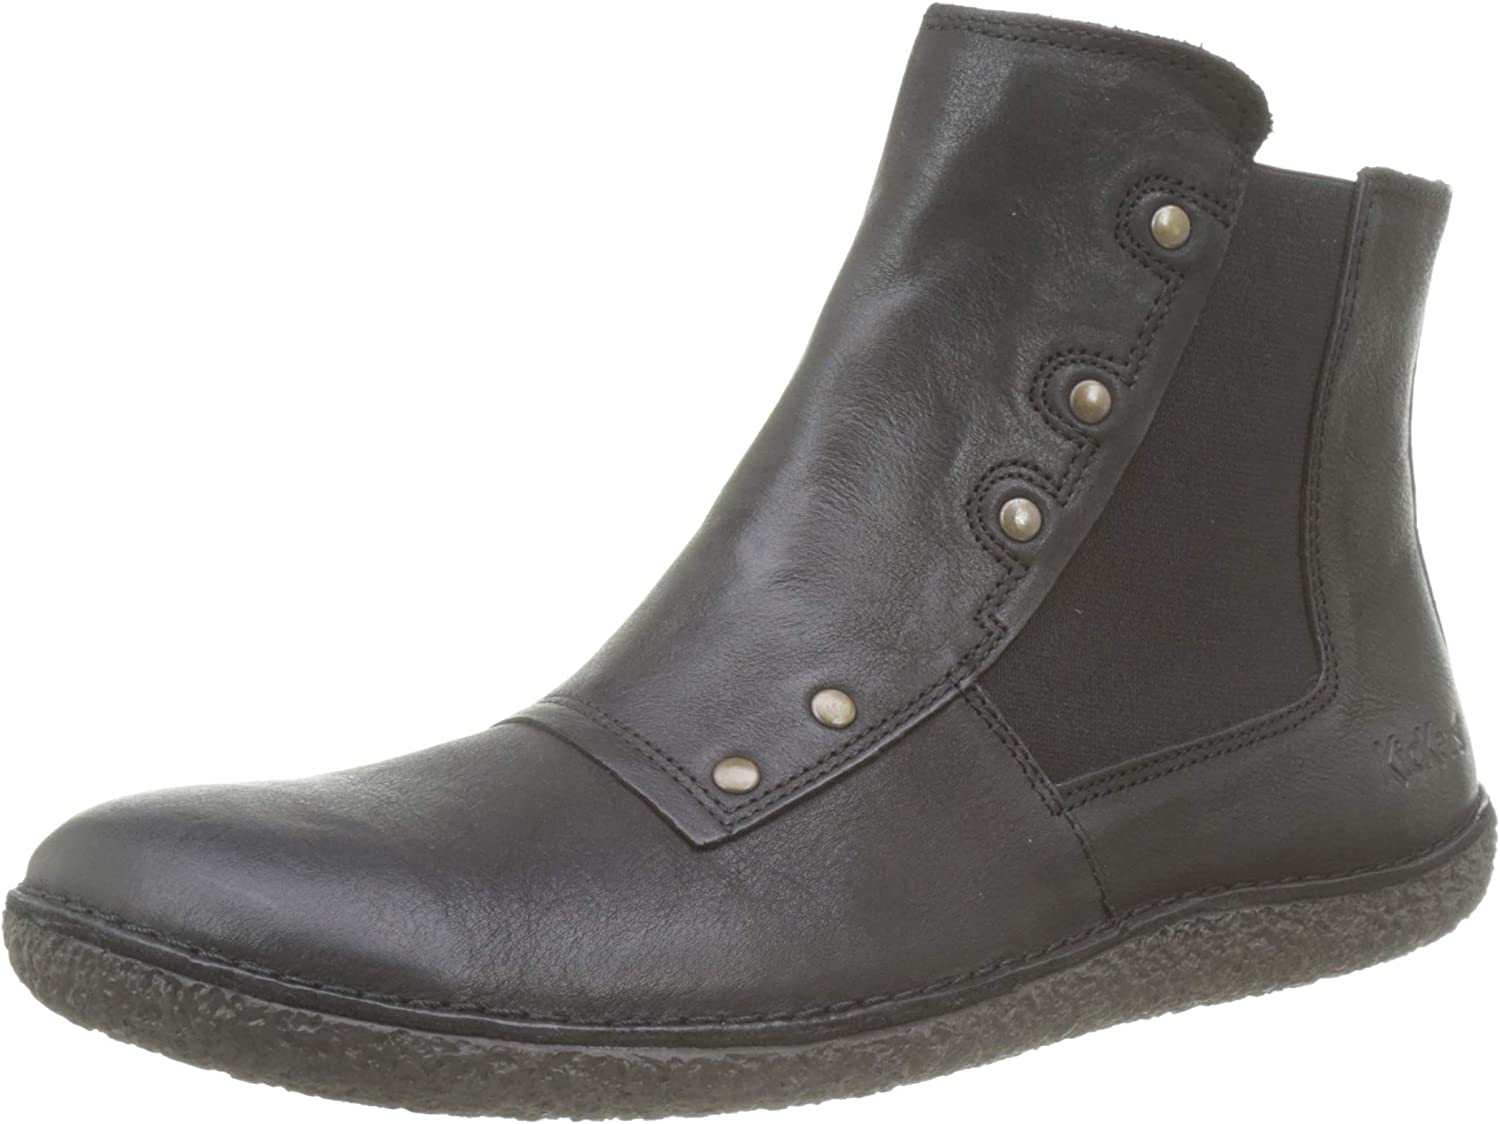 Kickers Special price for a limited time Women's overseas Boots Slouch